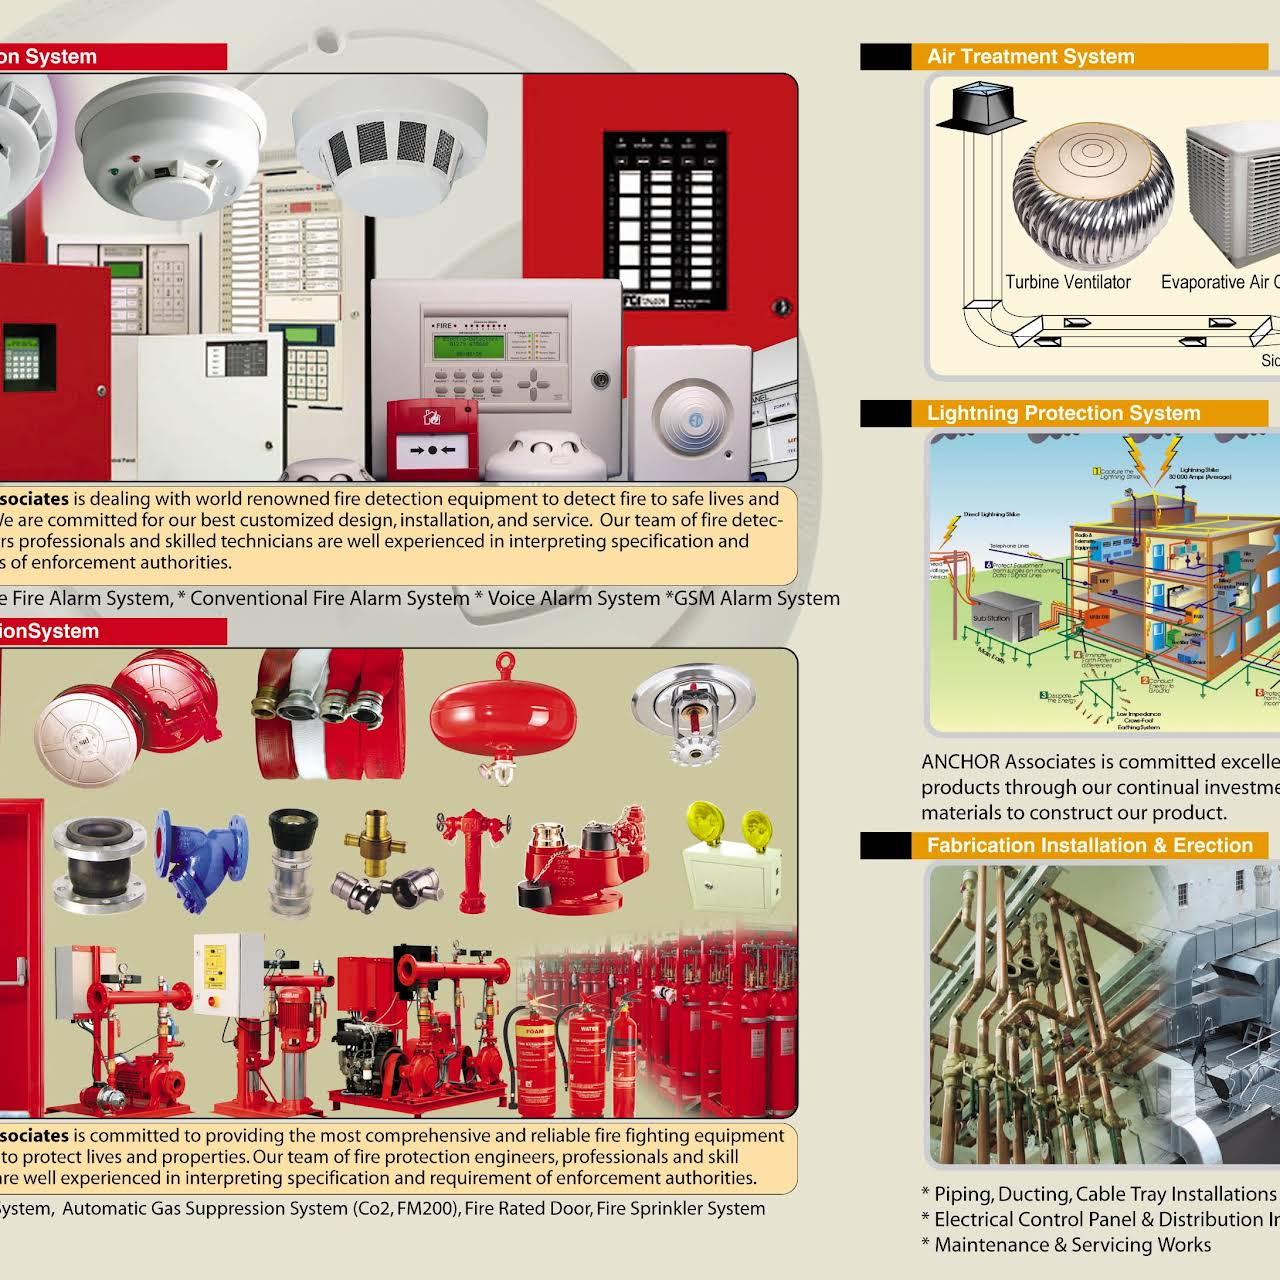 ANCHOR Associates - Fire Protection System Supplier in Dhaka